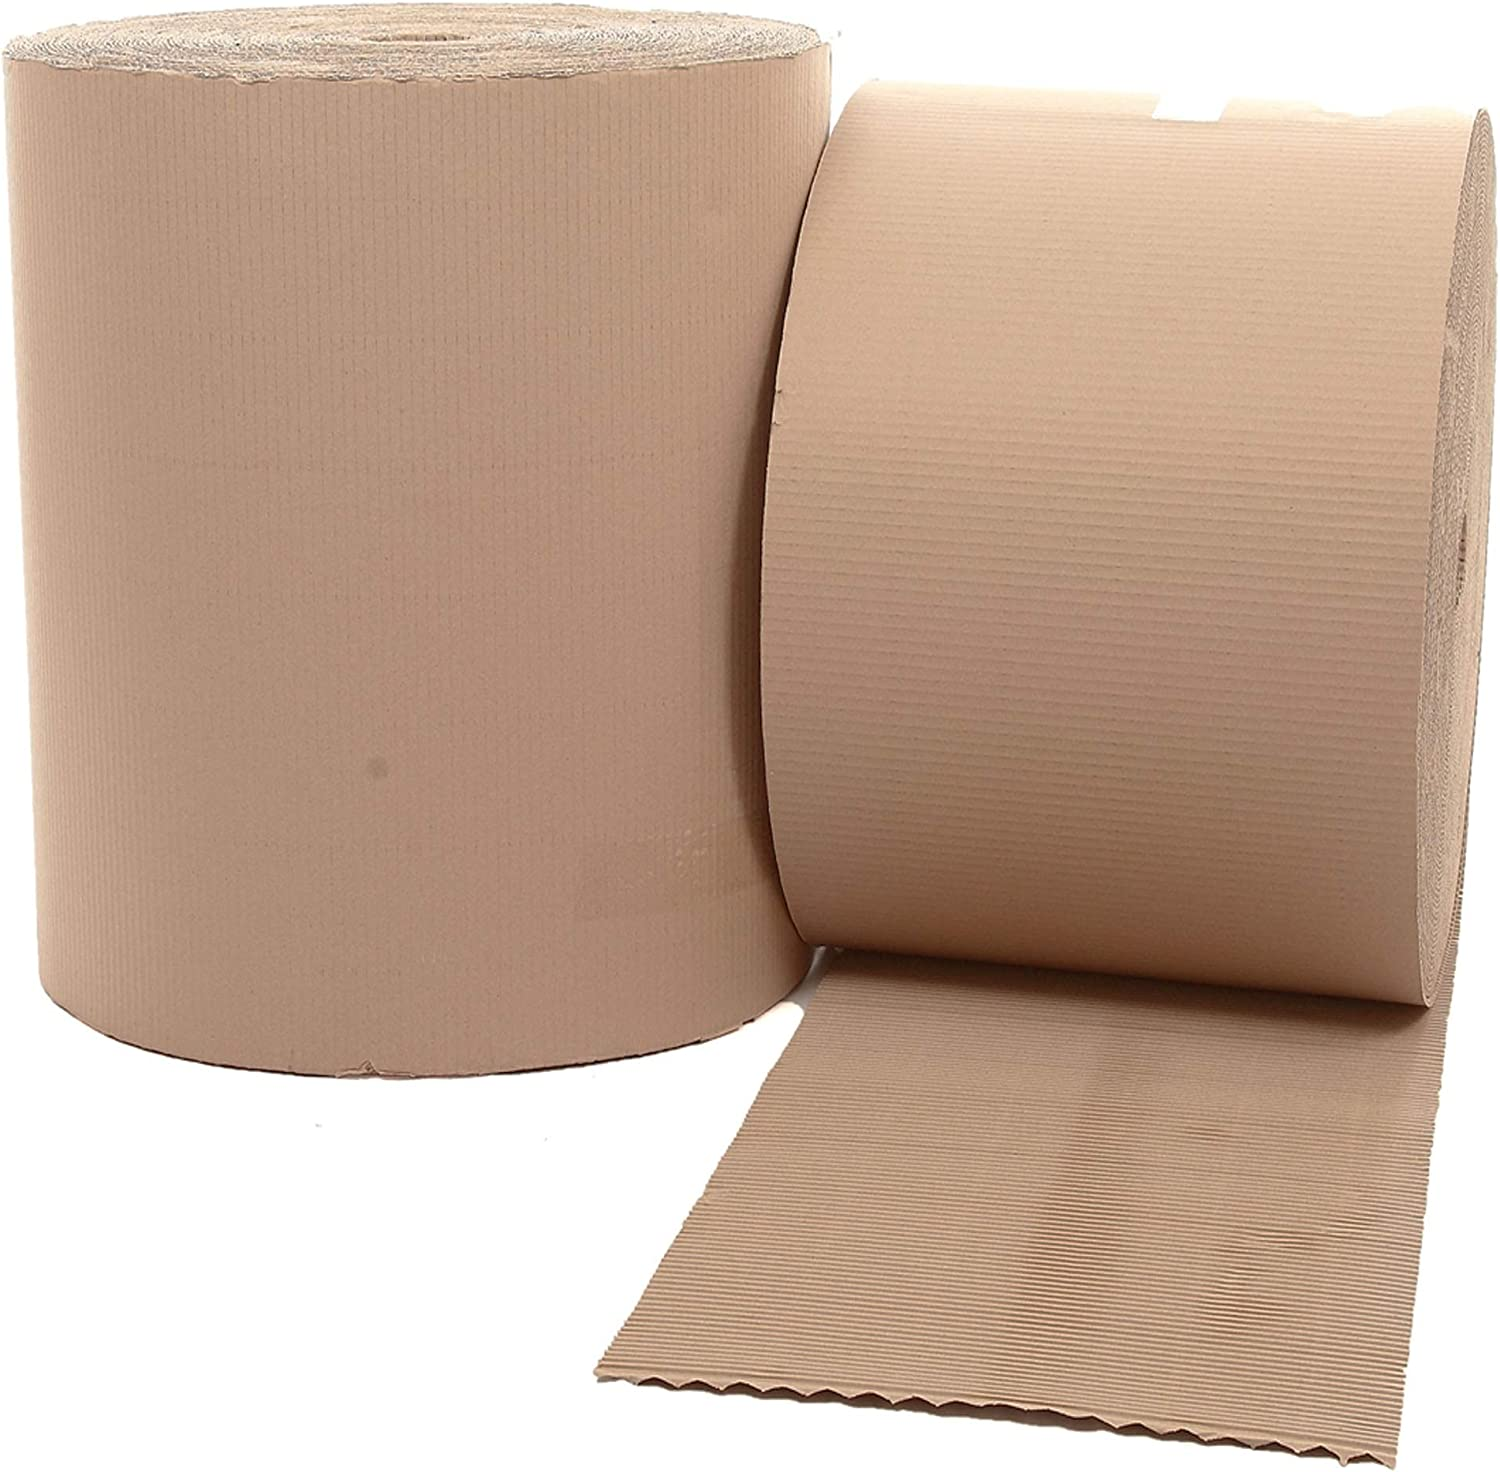 ALL WIDTHS /& SIZES *BEST PRICES* STRONG CORRUGATED CARDBOARD PAPER ROLLS